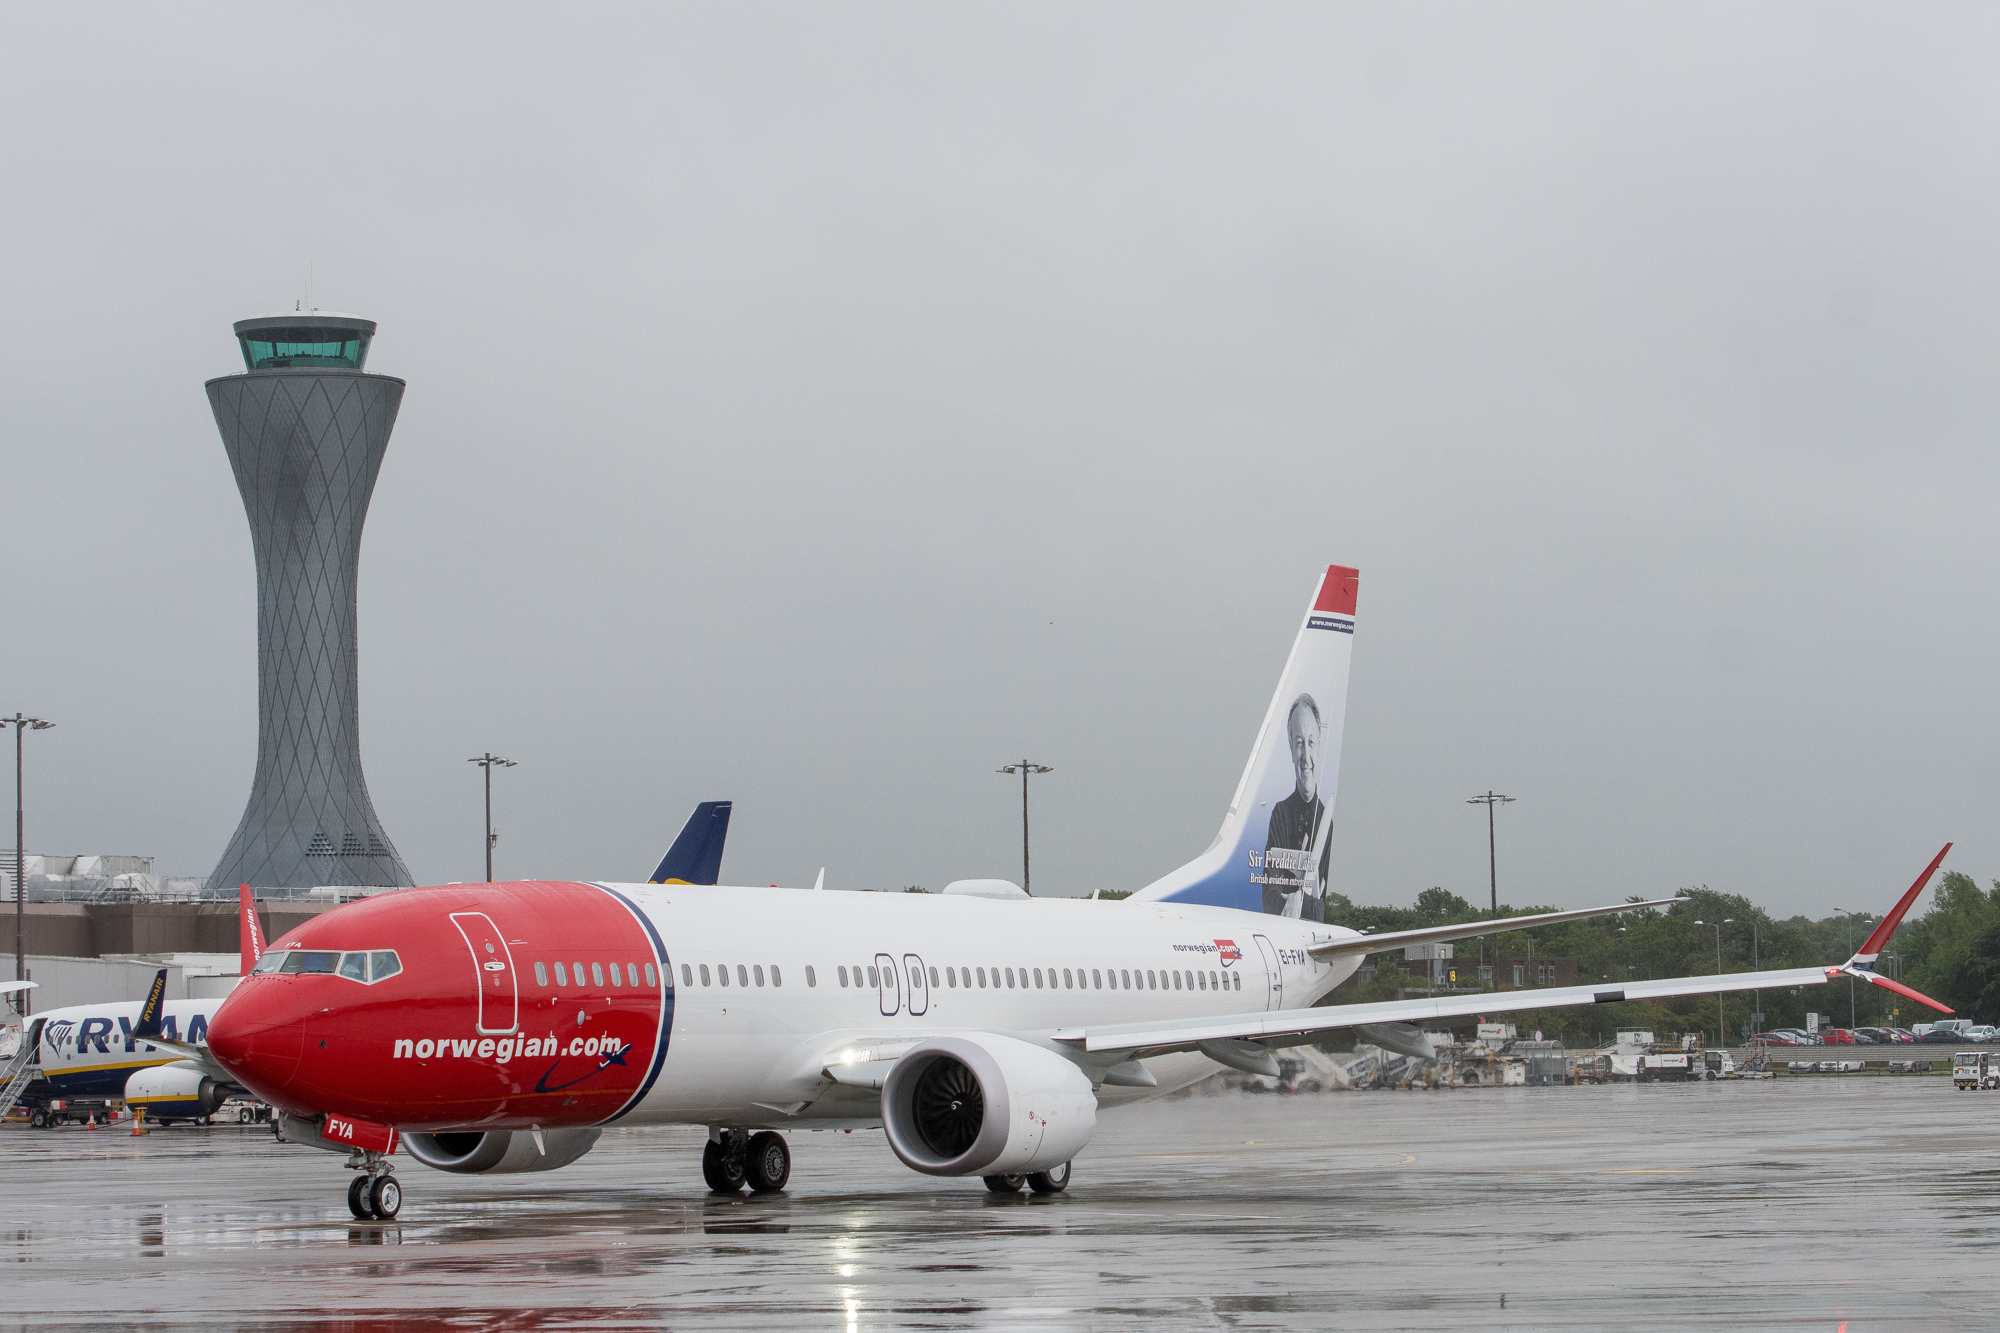 Norwegian 737 MAX Remains Stuck in Iran Three Weeks After Safety Landing  AirlineGeekscom